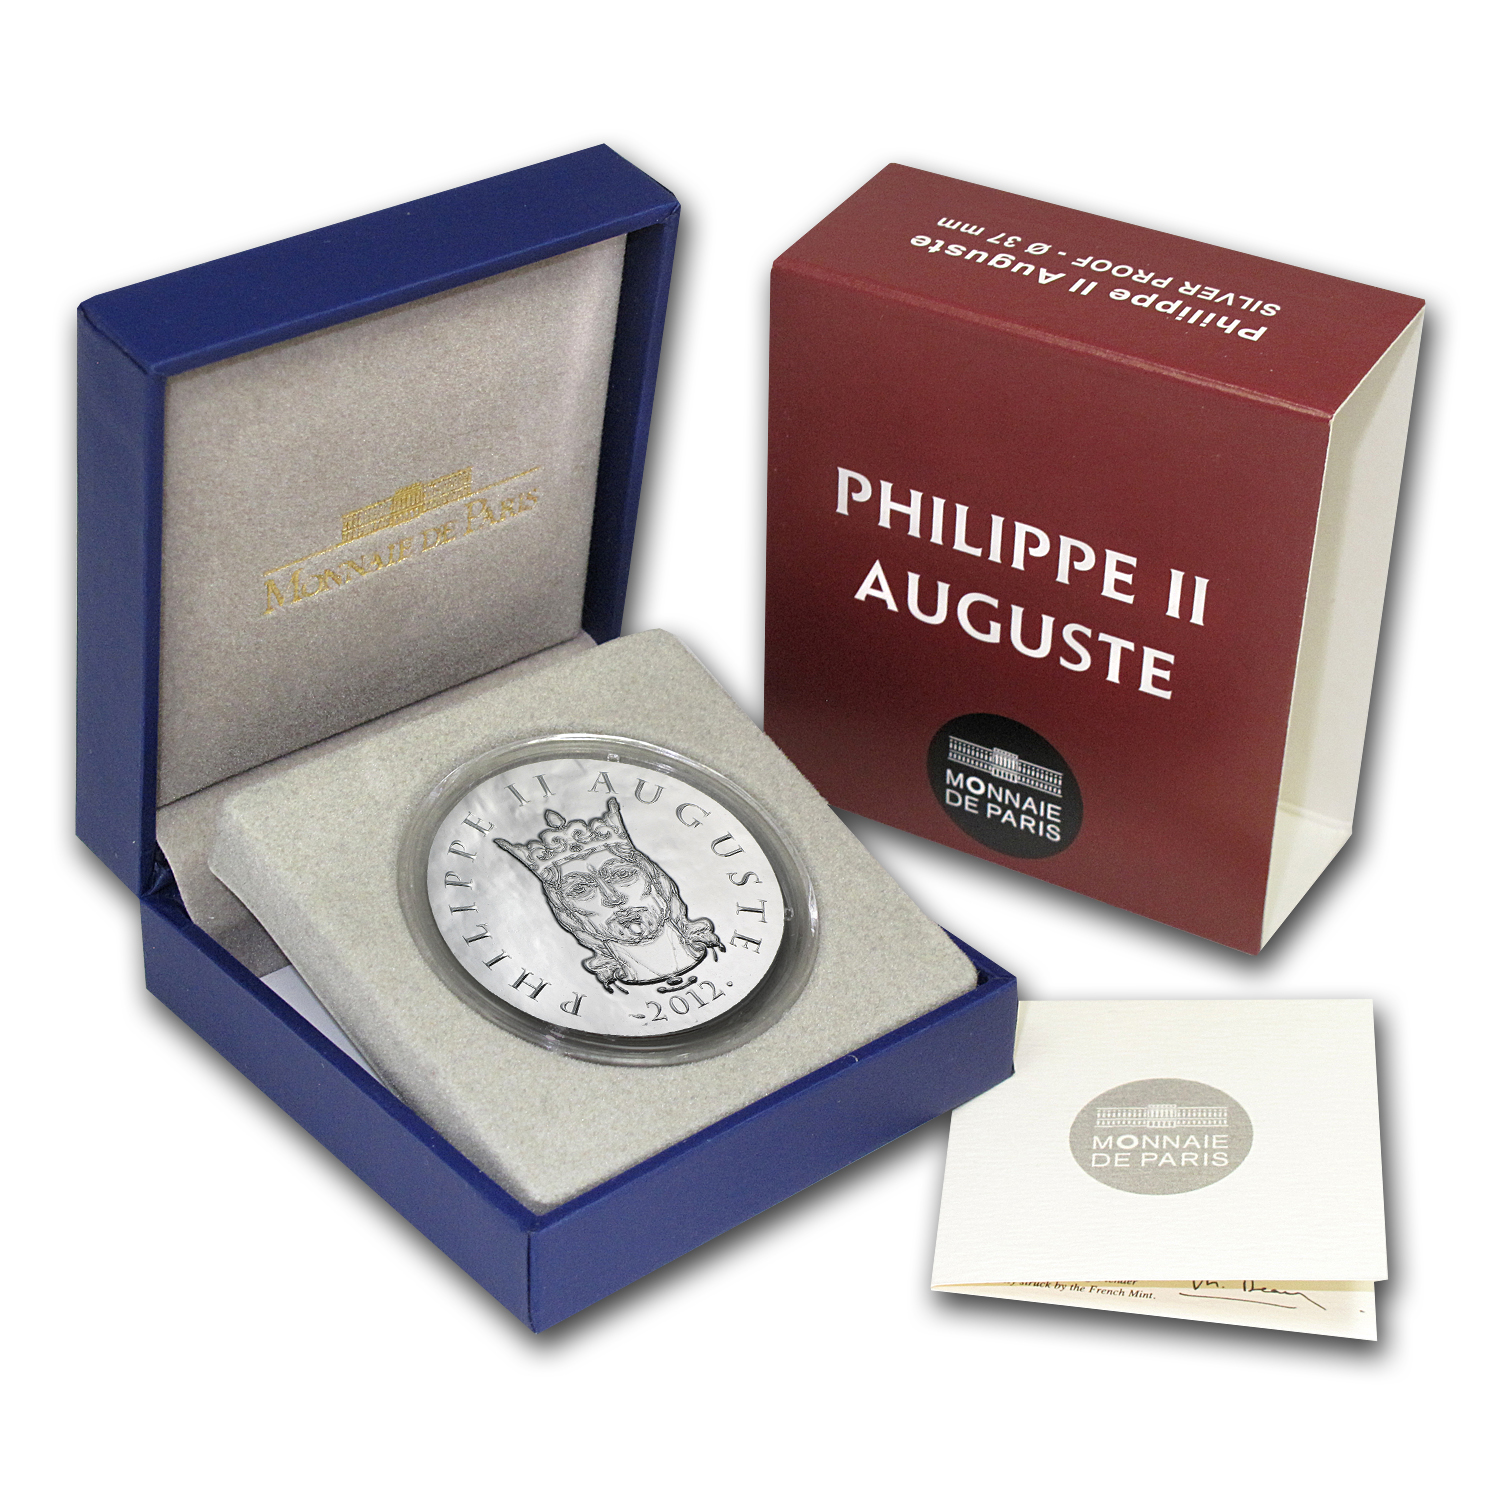 2012 France Silver €10 Legendary Collection (Philippe II Auguste)